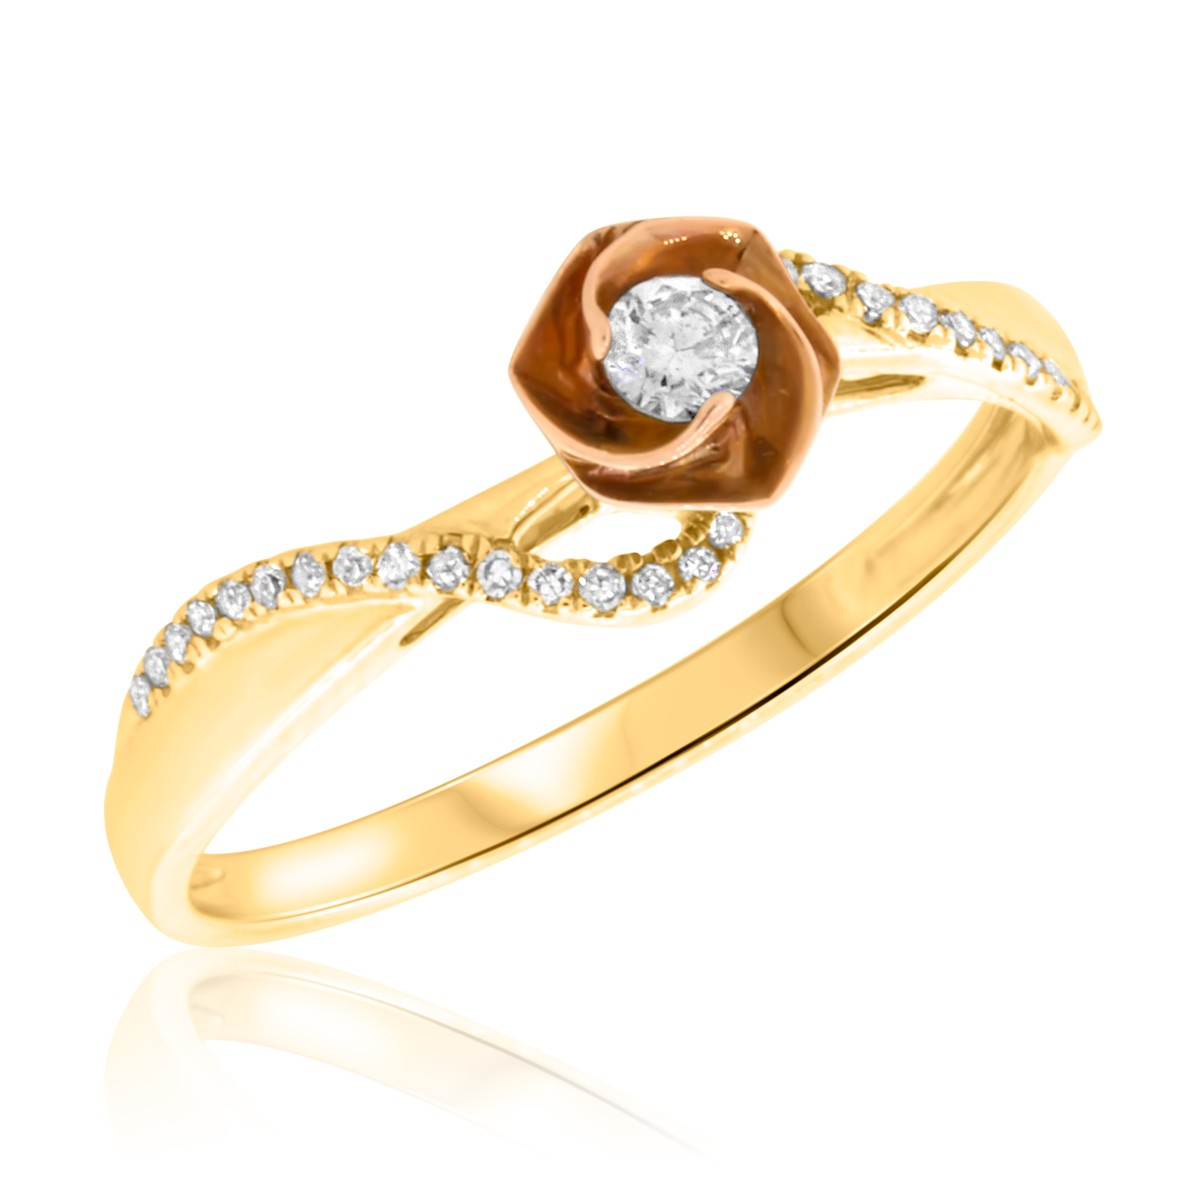 1 6 ct t w engagement ring 10k yellow gold